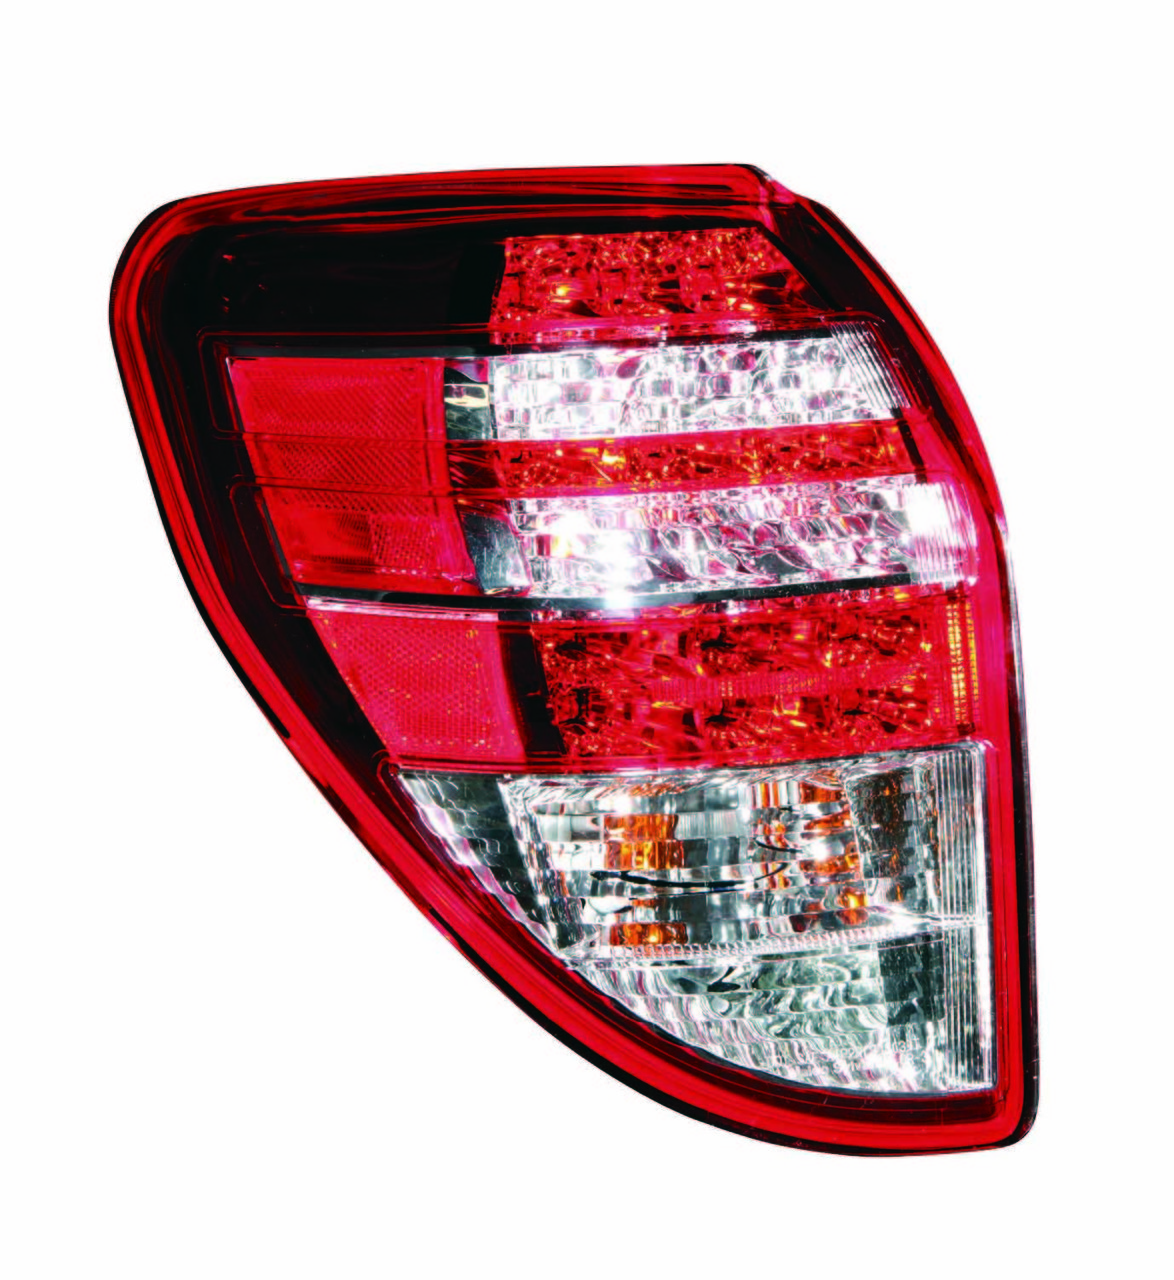 Toyota RAV4 2009 2010 2011 2012 tail light left driver